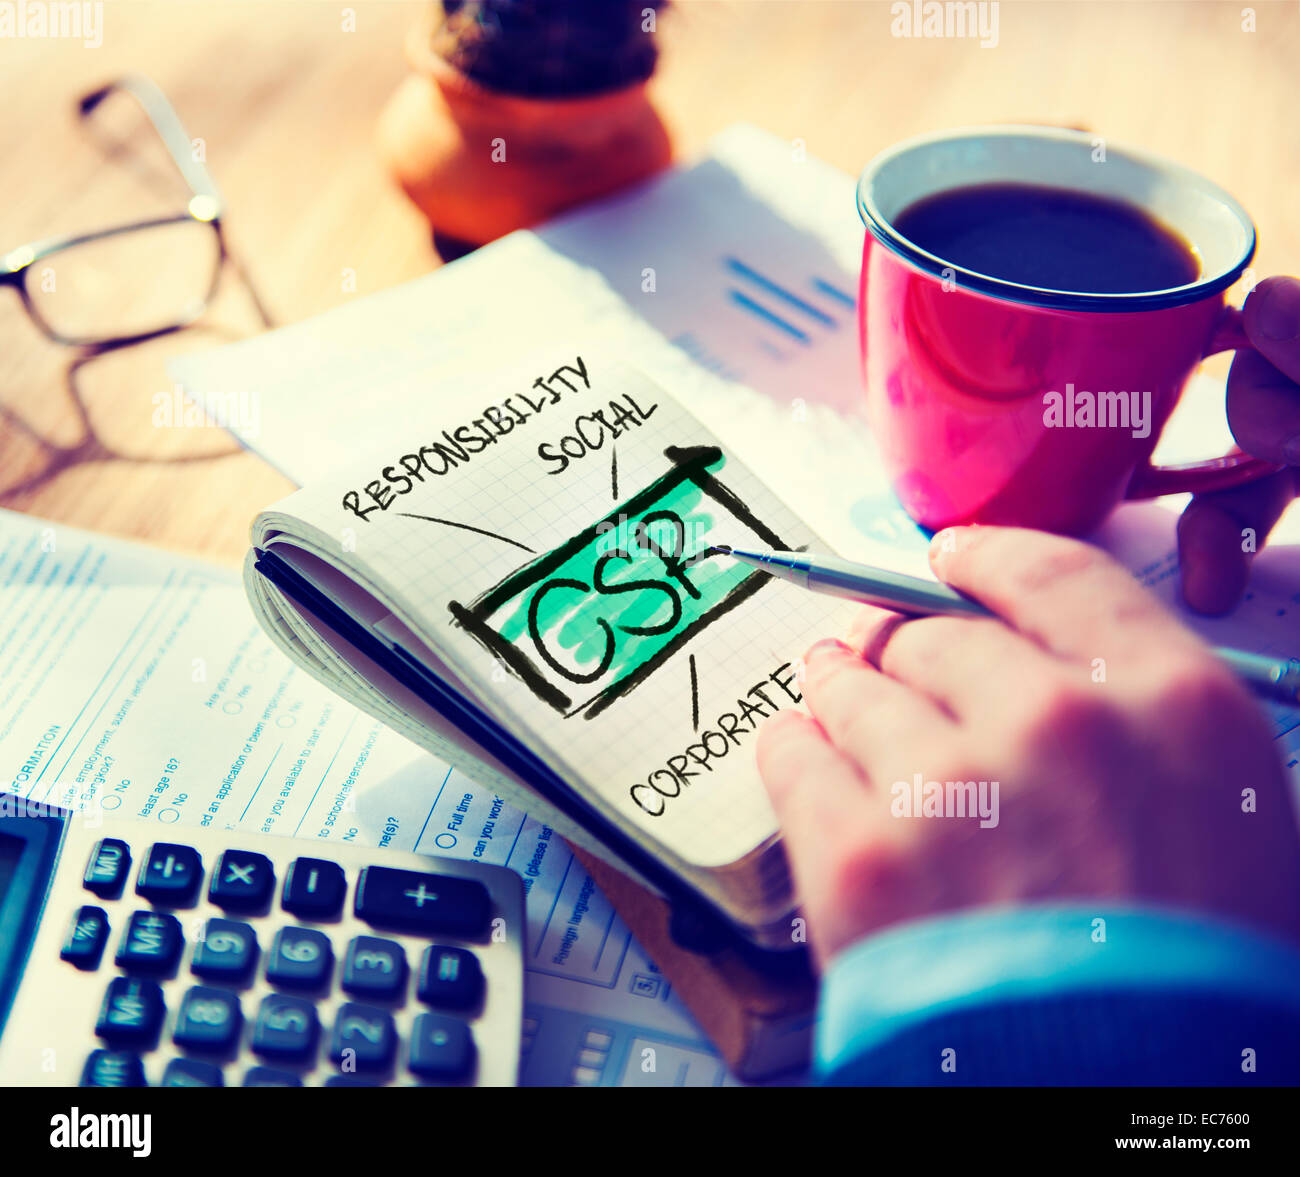 Corporate Social Responsibility Sustainability Responsible Office Accounting Concept - Stock Image